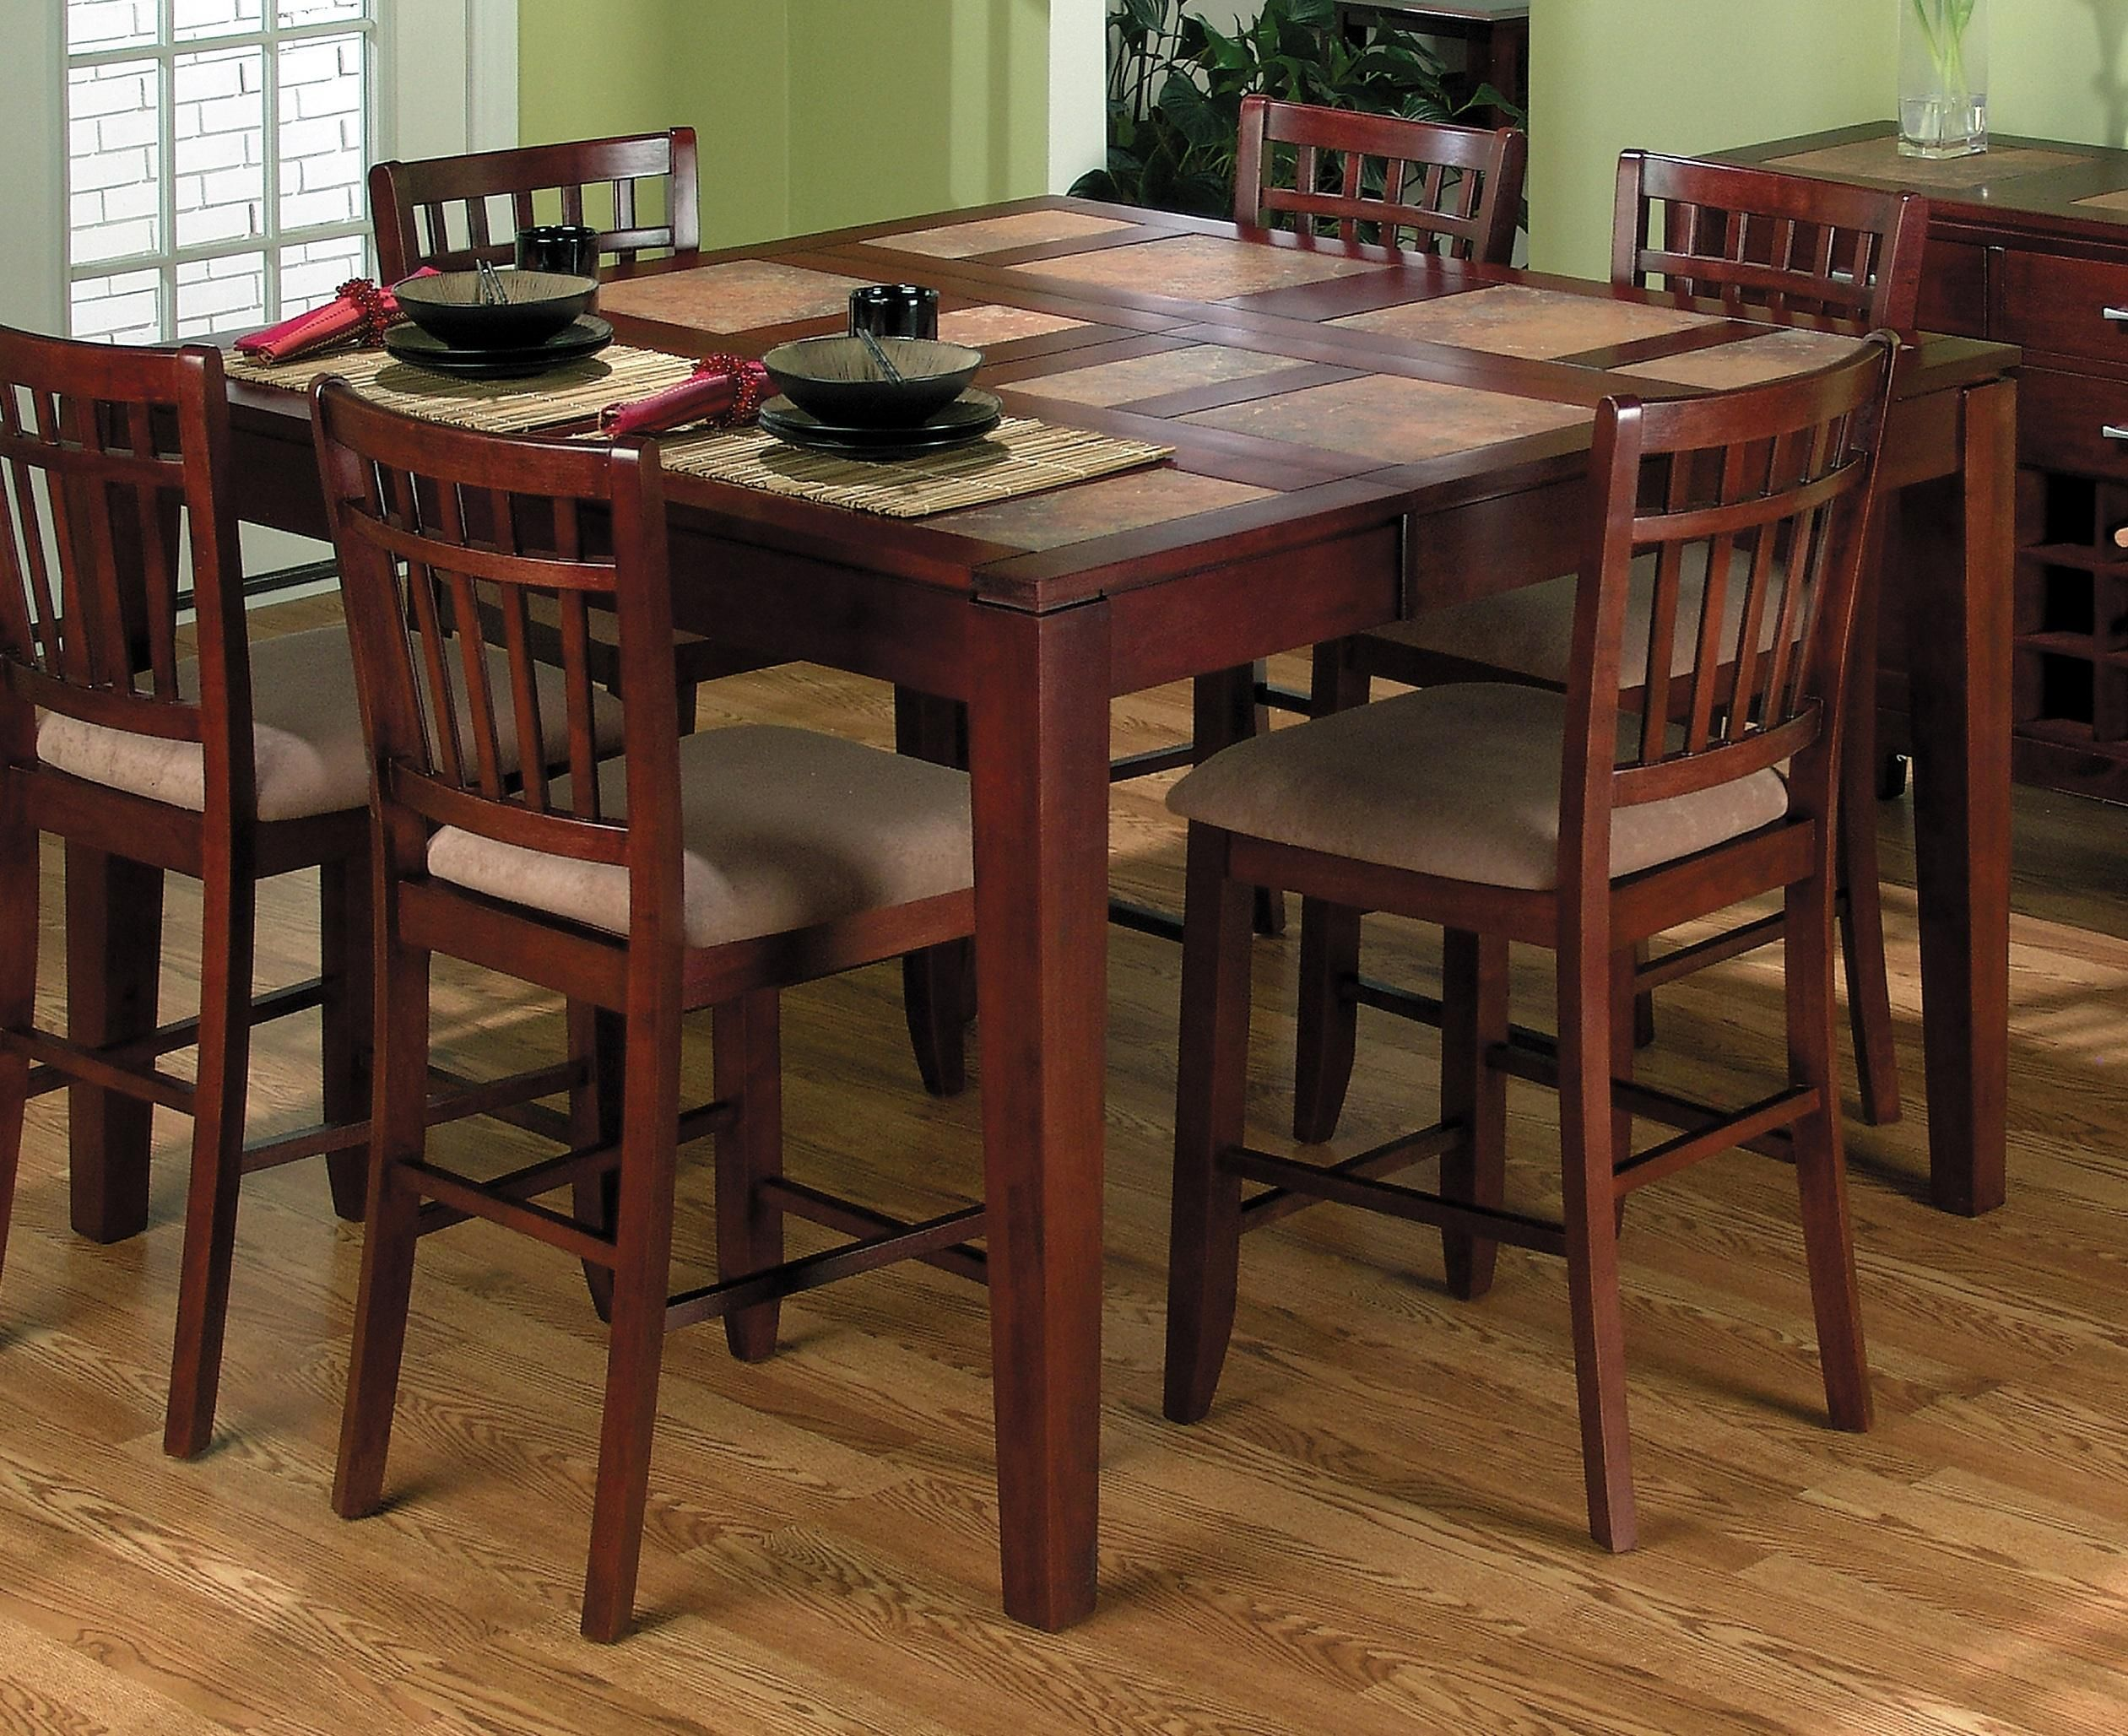 Traditional Counter Height Dining Table Stools Set Cappuccino Finish Also Contemporary Kitchen Sets